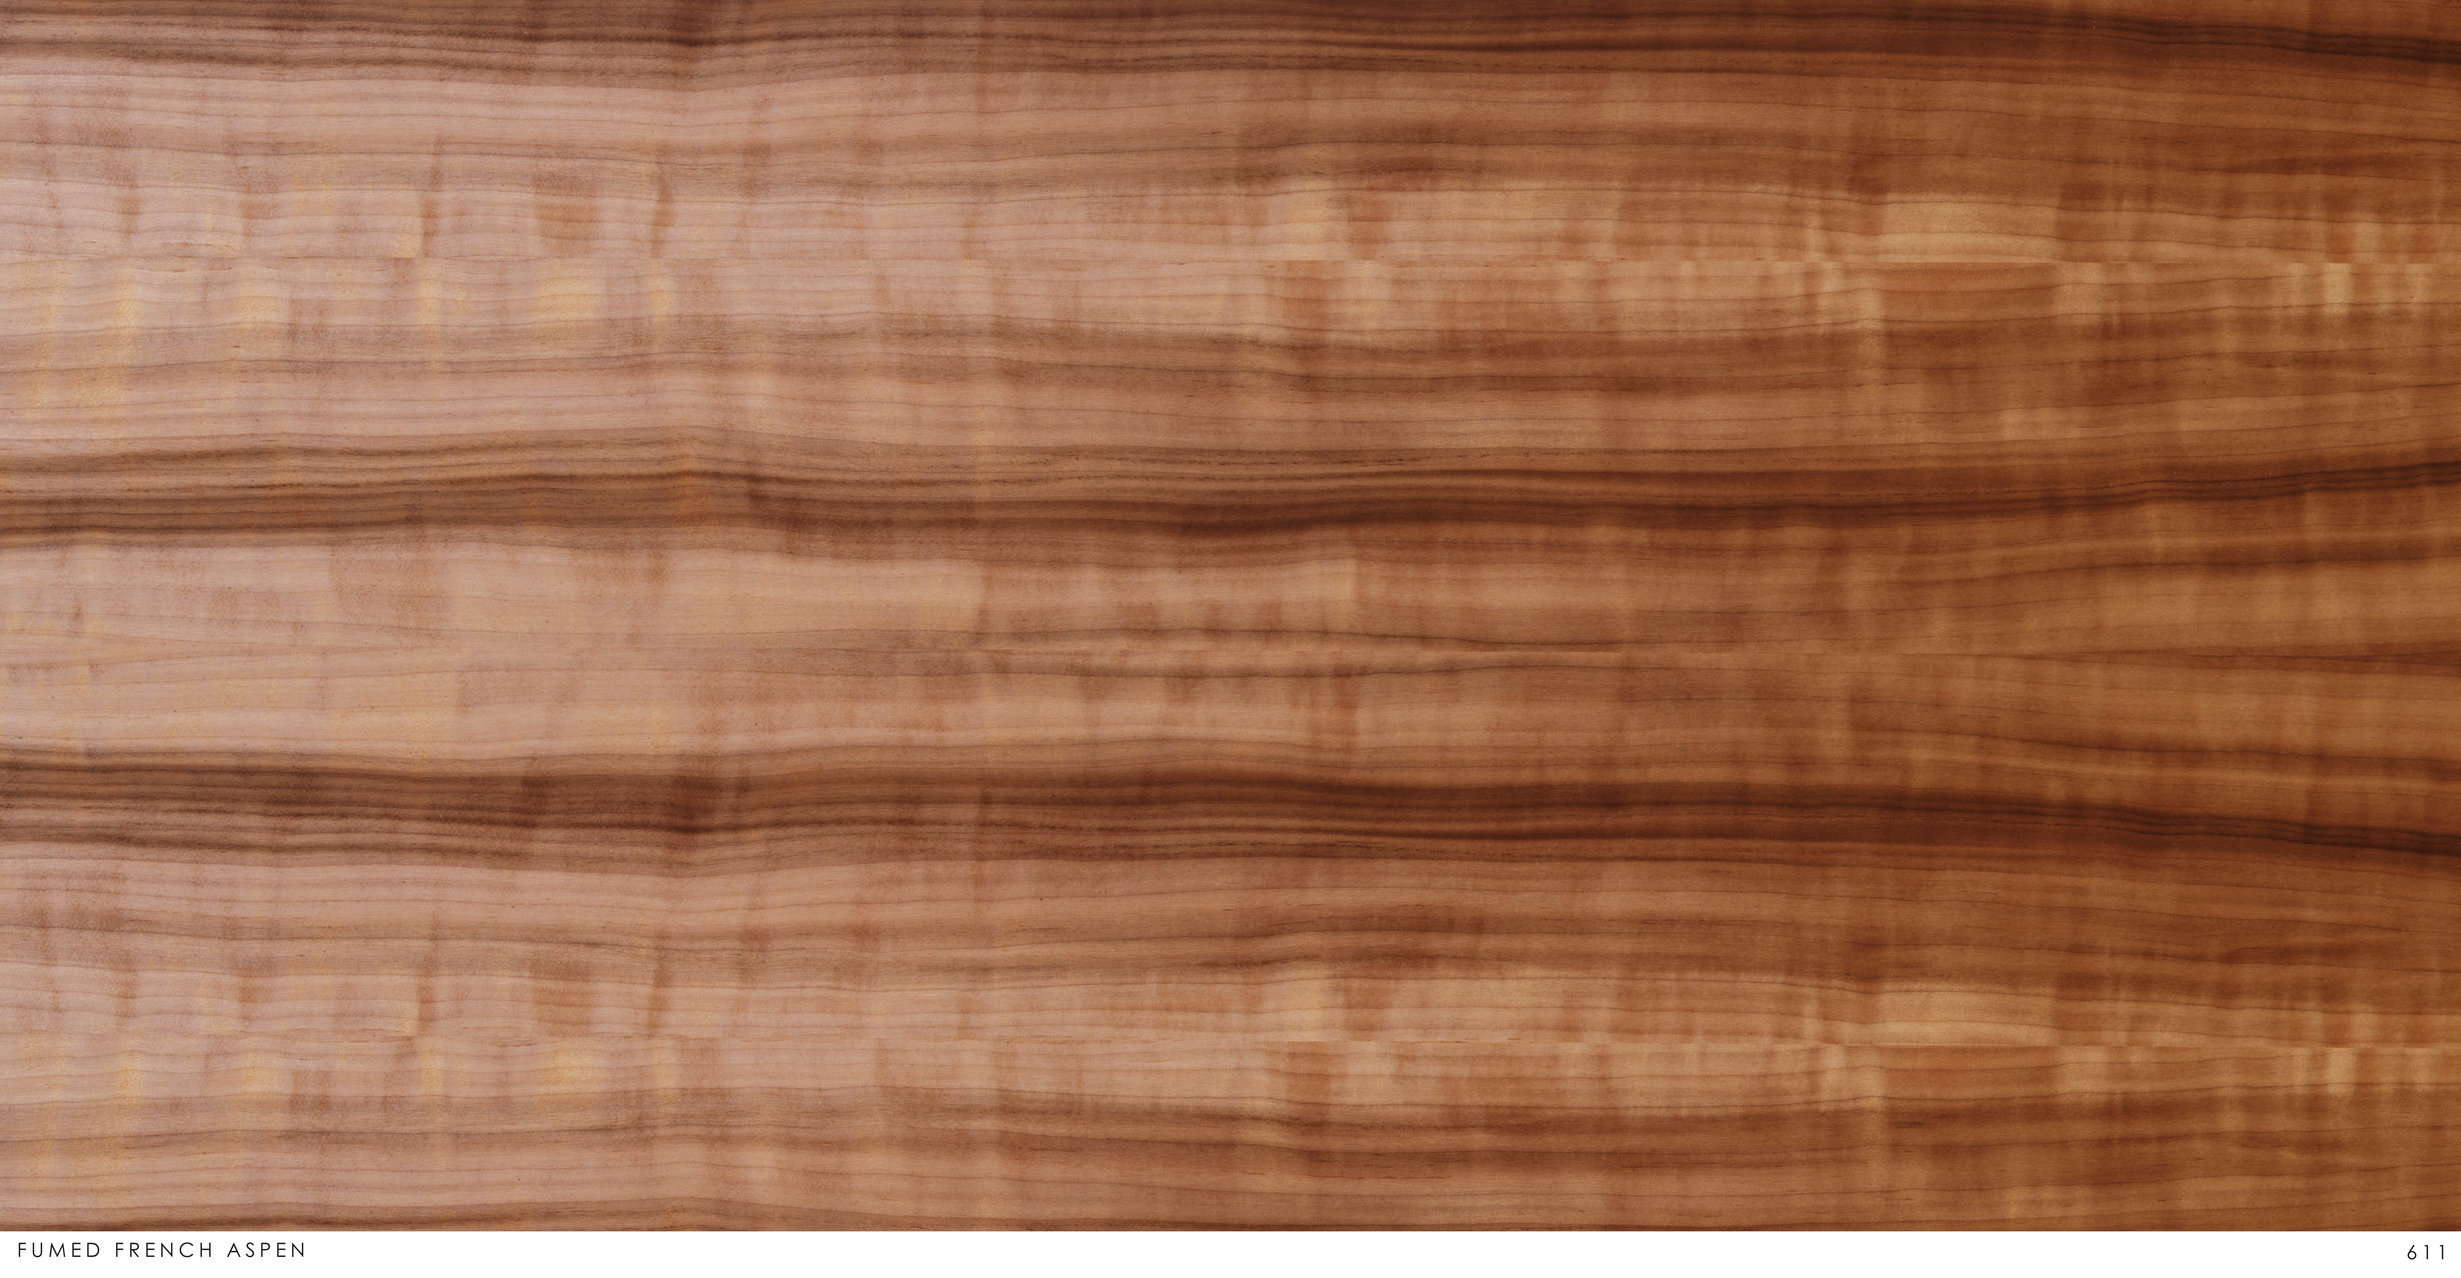 FUMED FRENCH ASPEN 611.jpg